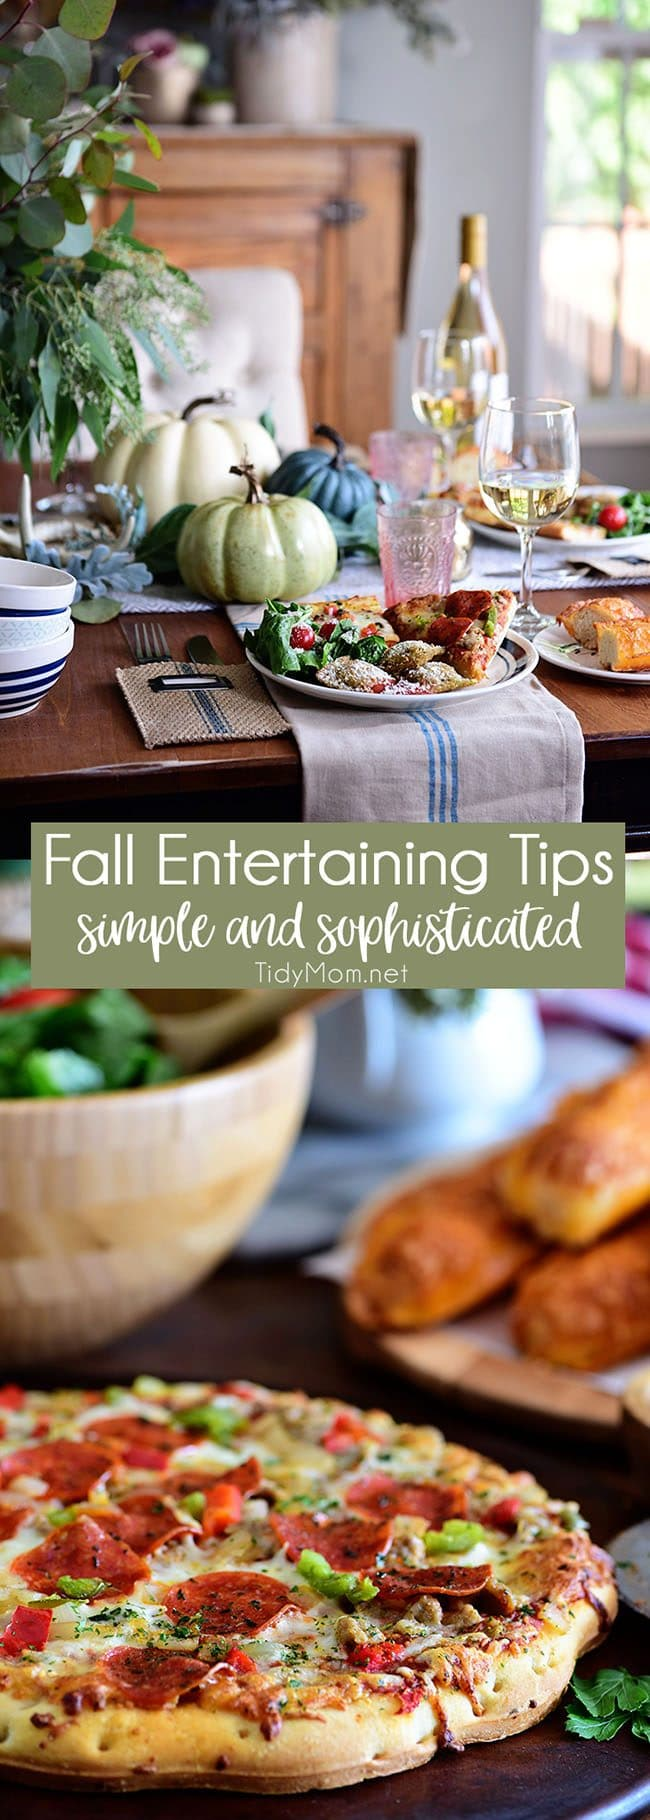 Fall Entertaining can be simple and still be elegant. There's nothing like themagic of a small cozy fall dinner party—good company, a simple but radiant table, delicious stress-free food and everyone feels relaxed Get all the fall entertaining tips and ideas at TidyMom.net